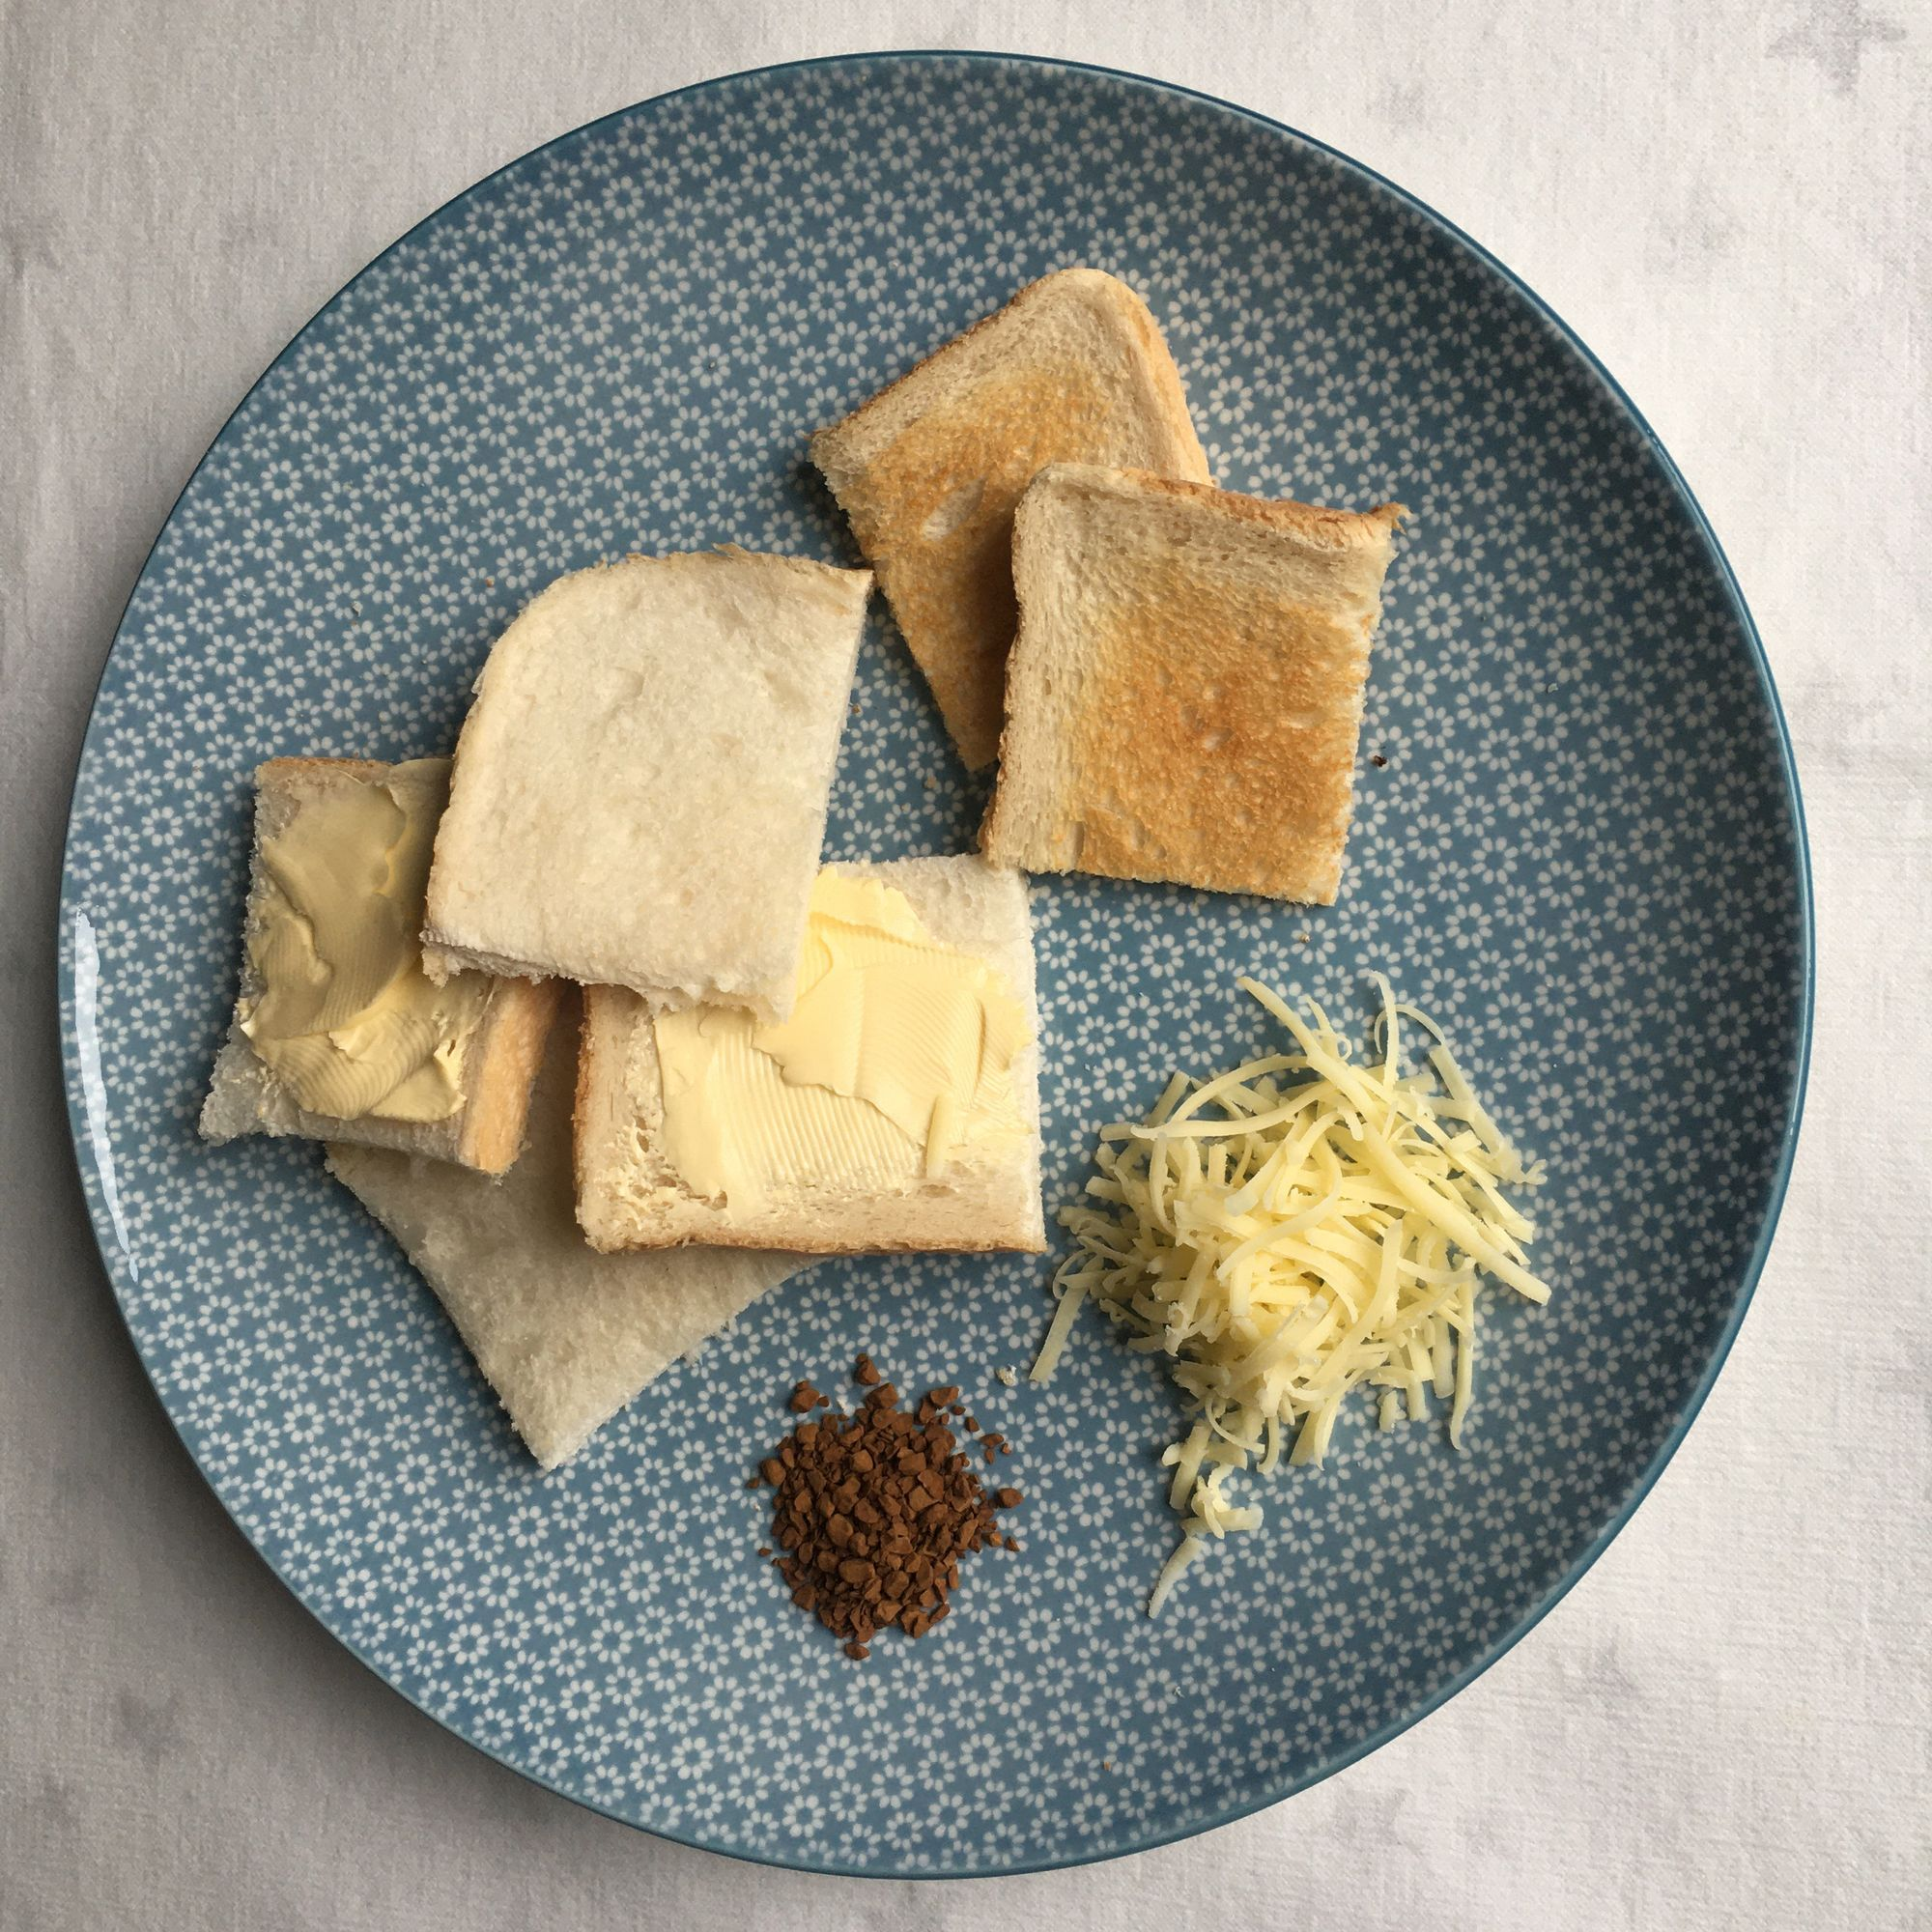 Plate with Secondary Aroma objects - bread, butter, toast, cheese, coffee